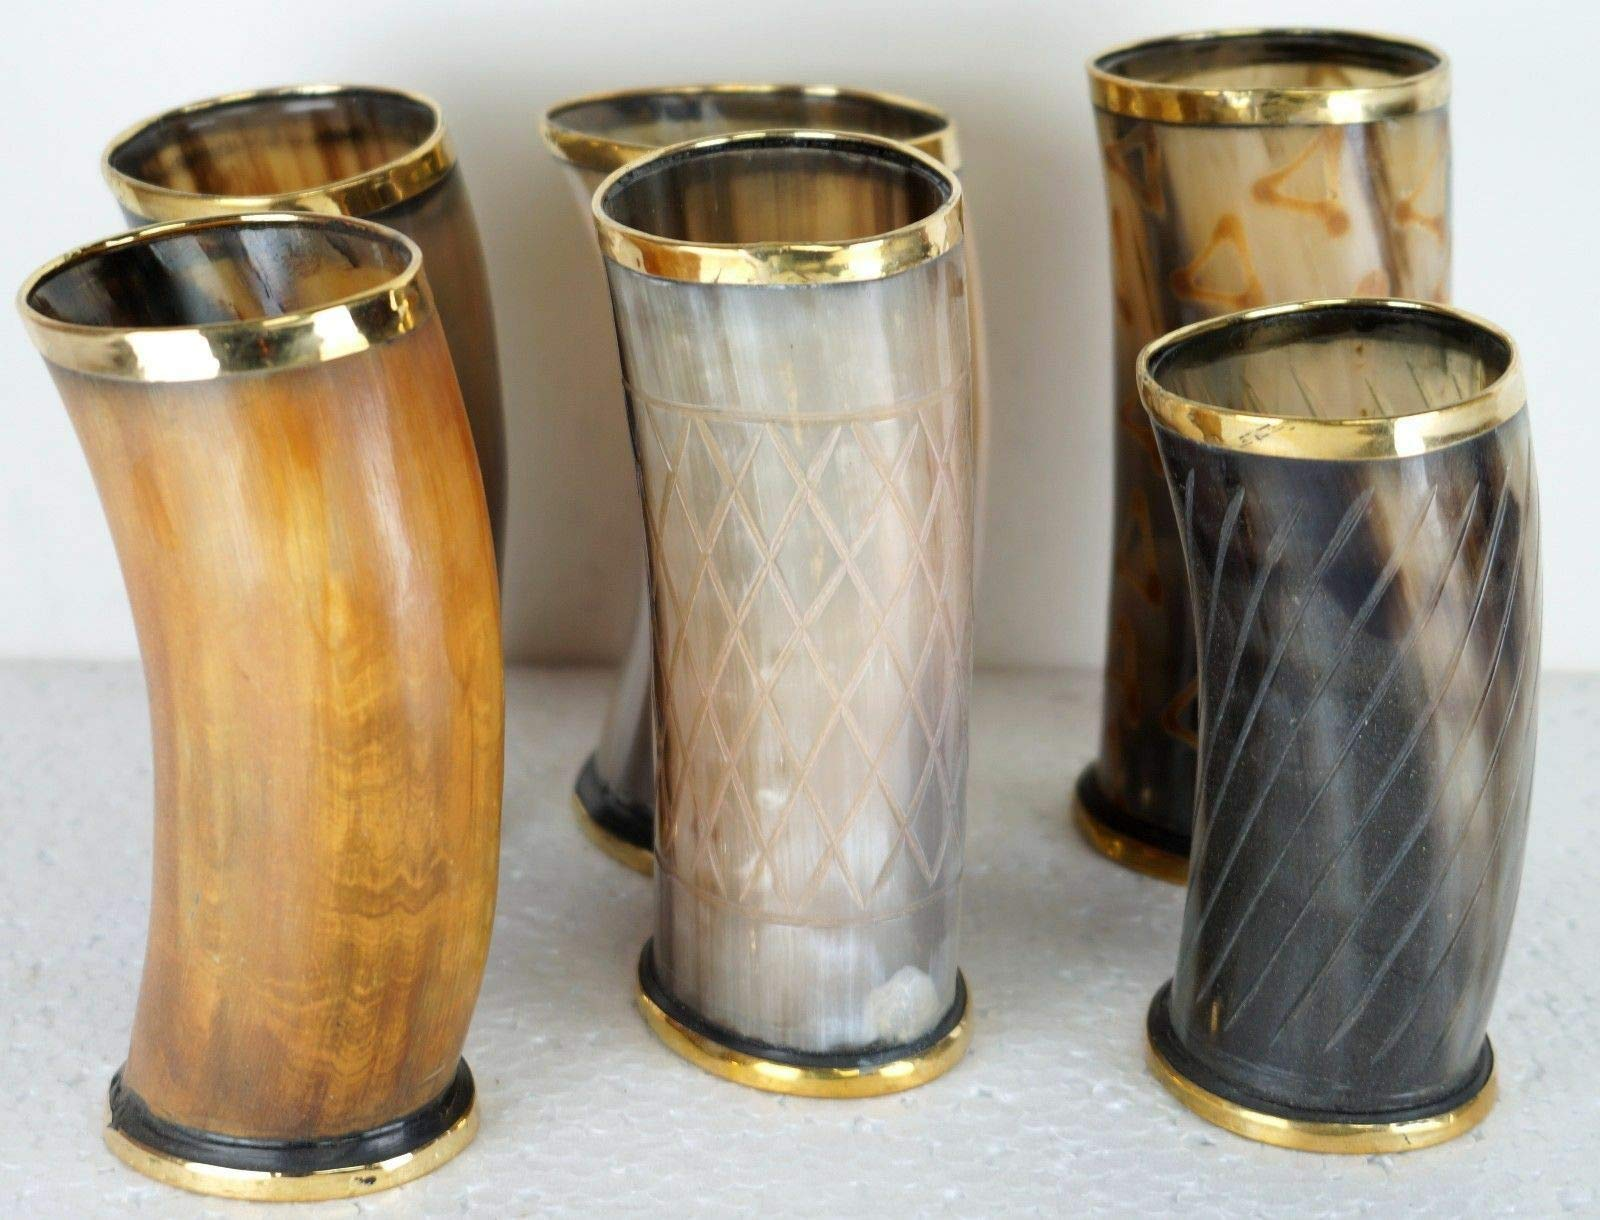 GLOBALEXPORTSHUB RONSet of 6 New Viking Drinking Horn Cup Mugs for Beer Wine Mead